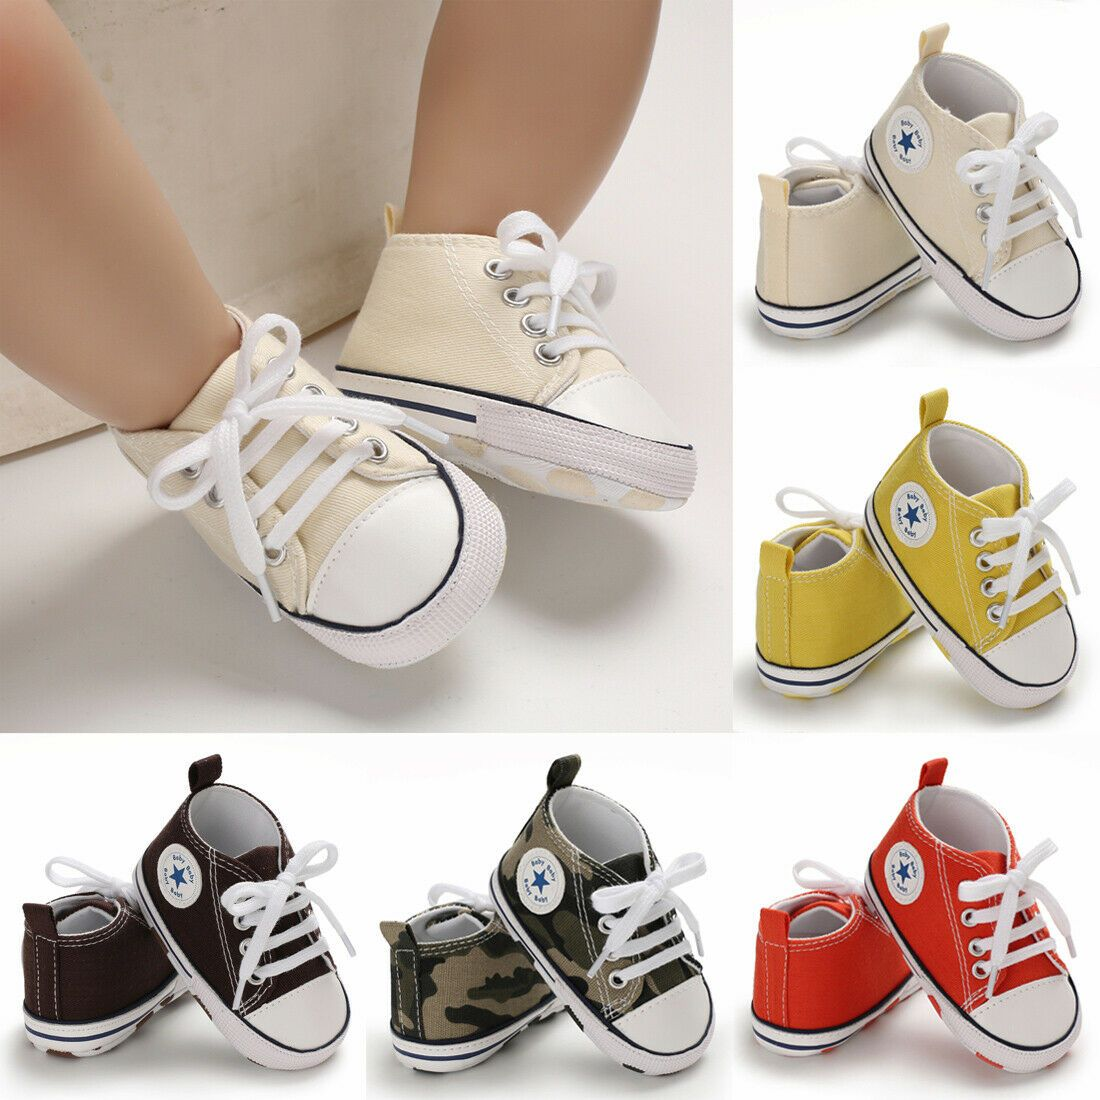 Details About Us Newborn Infant Canvas Sneaker Baby Boy Girl Soft Sole Crib Shoes 0 12 Months Kids Shoes Boys Nike Baby Girl Shoes Kids Leather Shoes